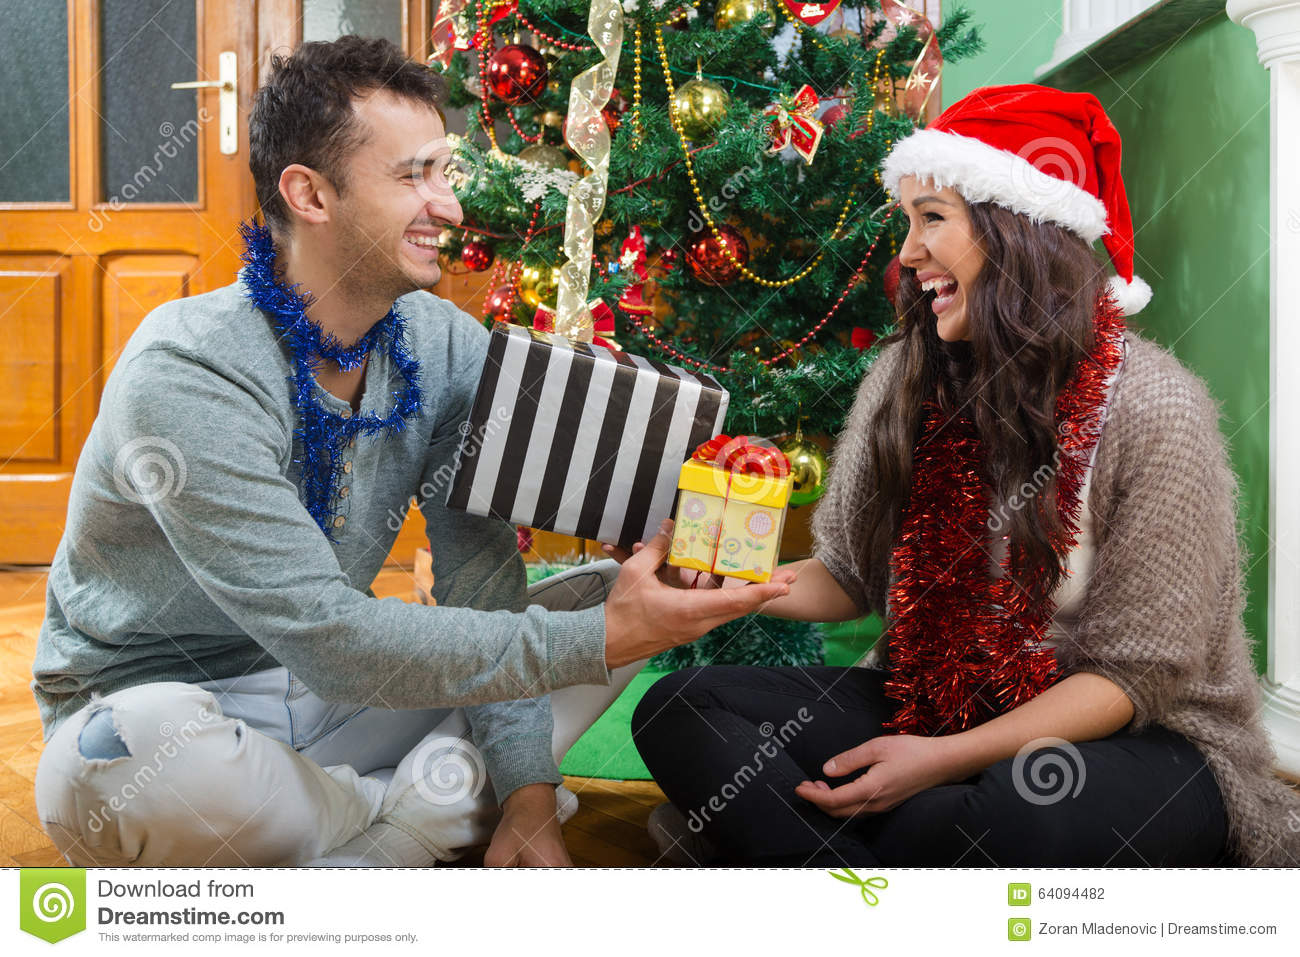 Happy couple laughing and enjoying Christmas presents